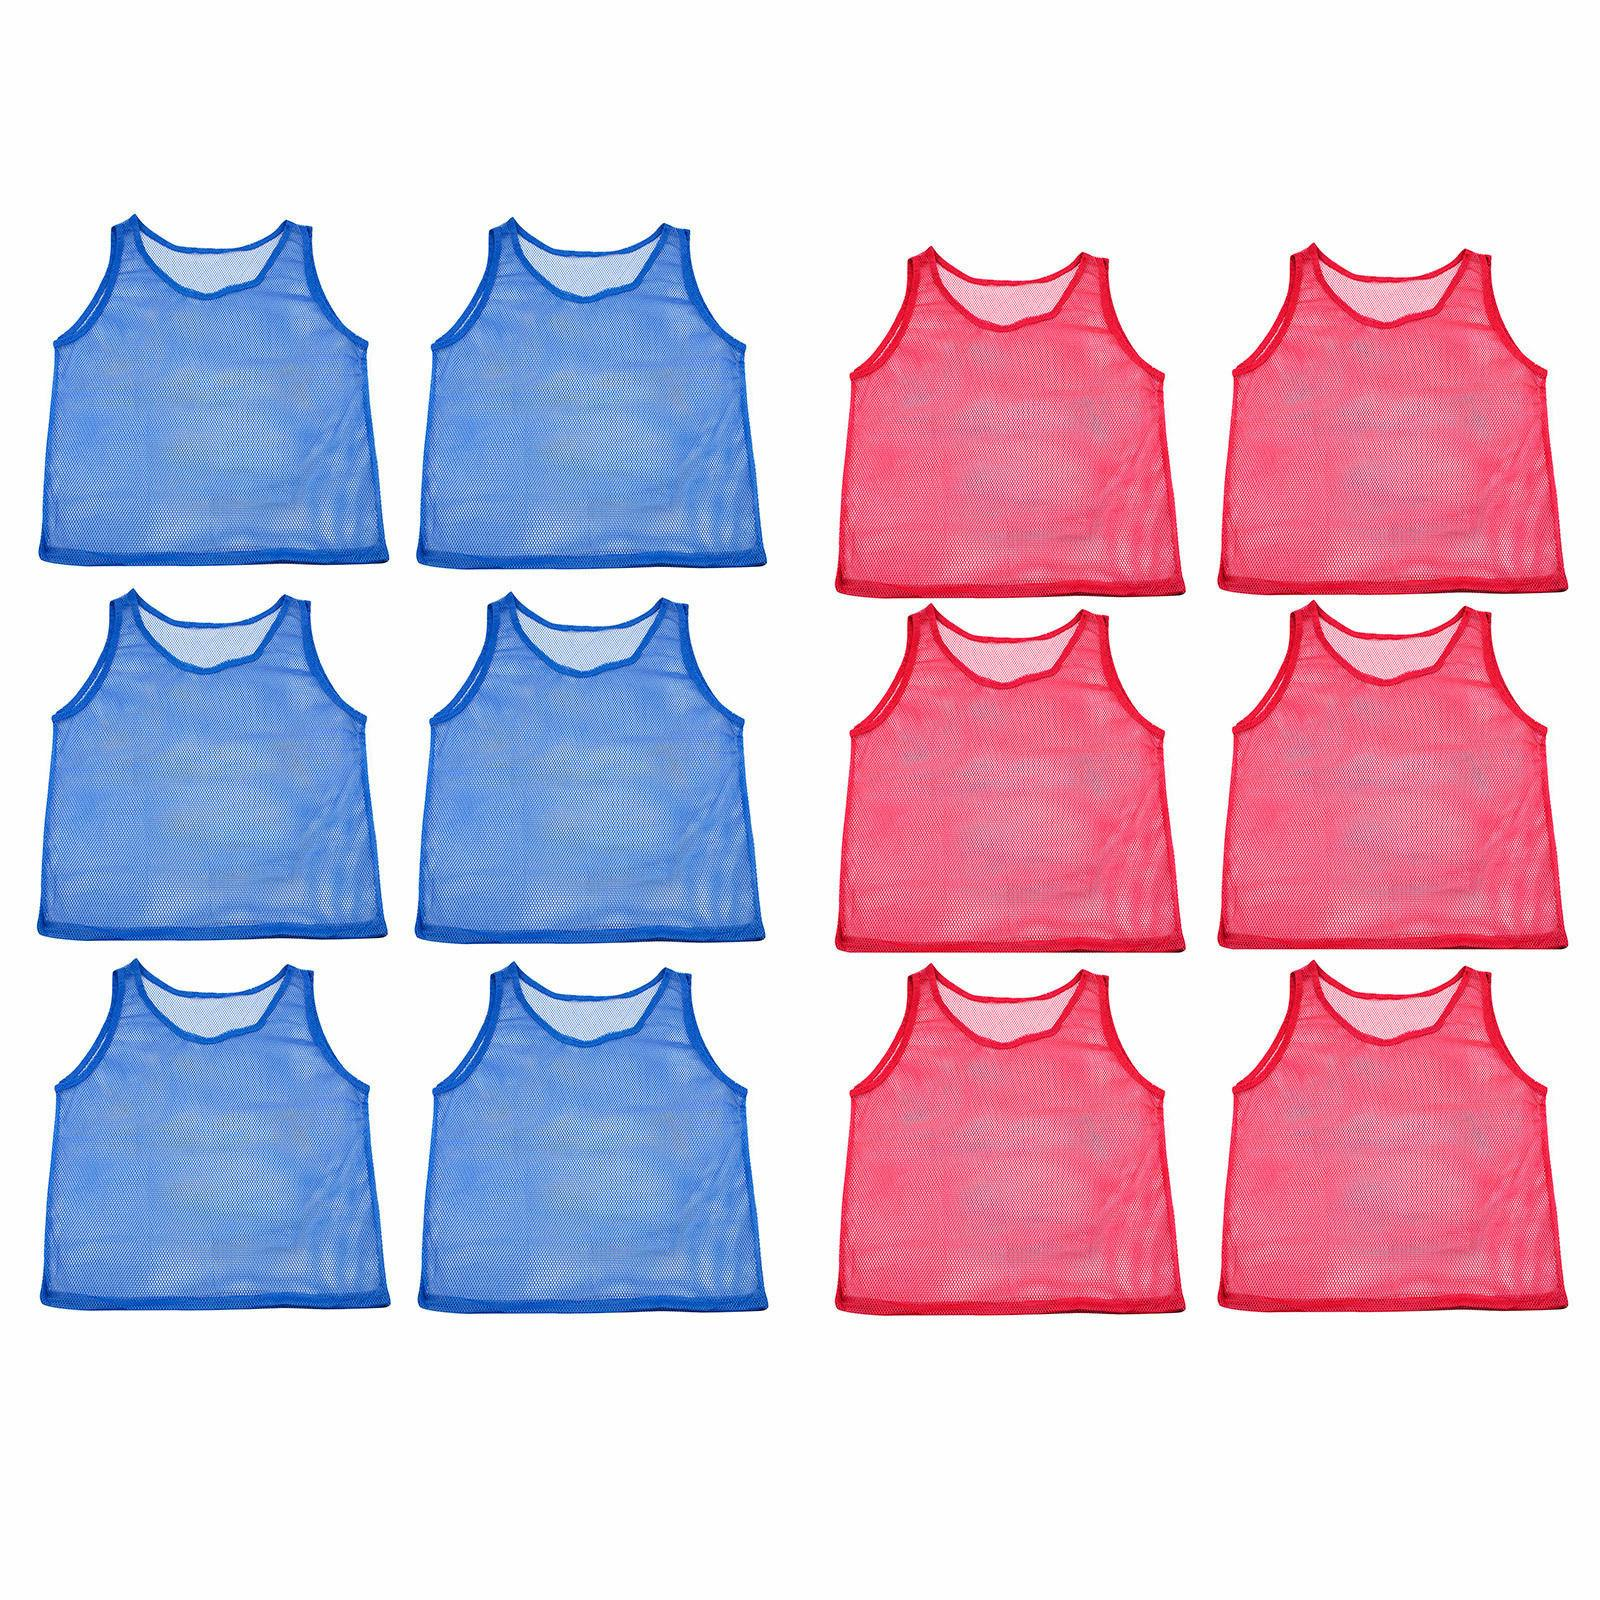 12pc YOUTH Scrimmage Practice Team Jerseys Sports Pinnies Ba